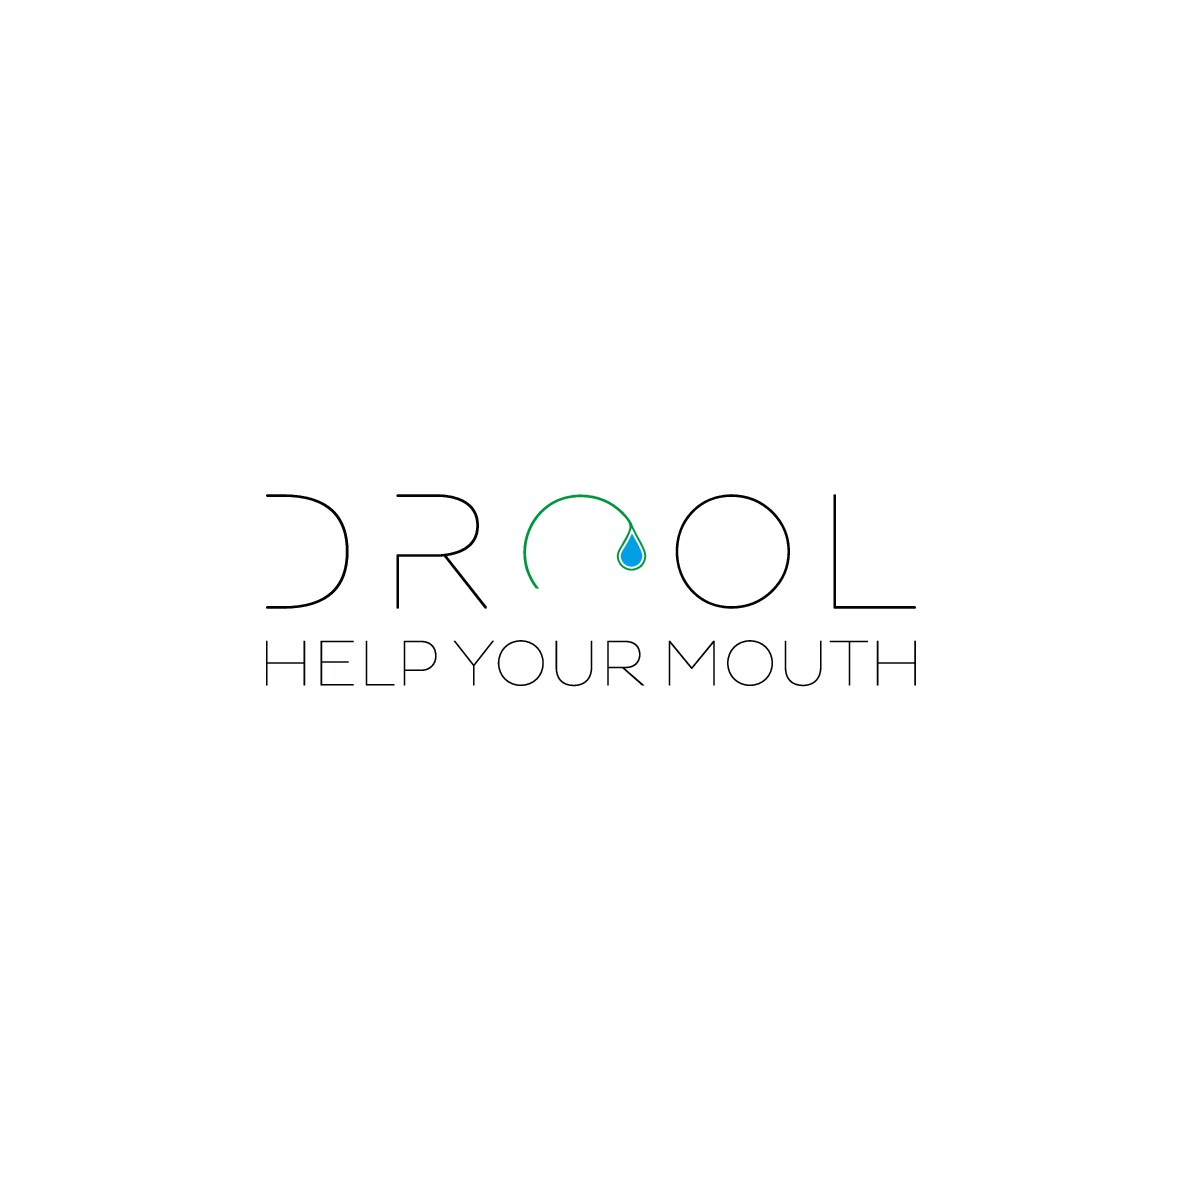 """Temporary relief from dry mouth logo for an herbal lozenge named """"drool""""."""